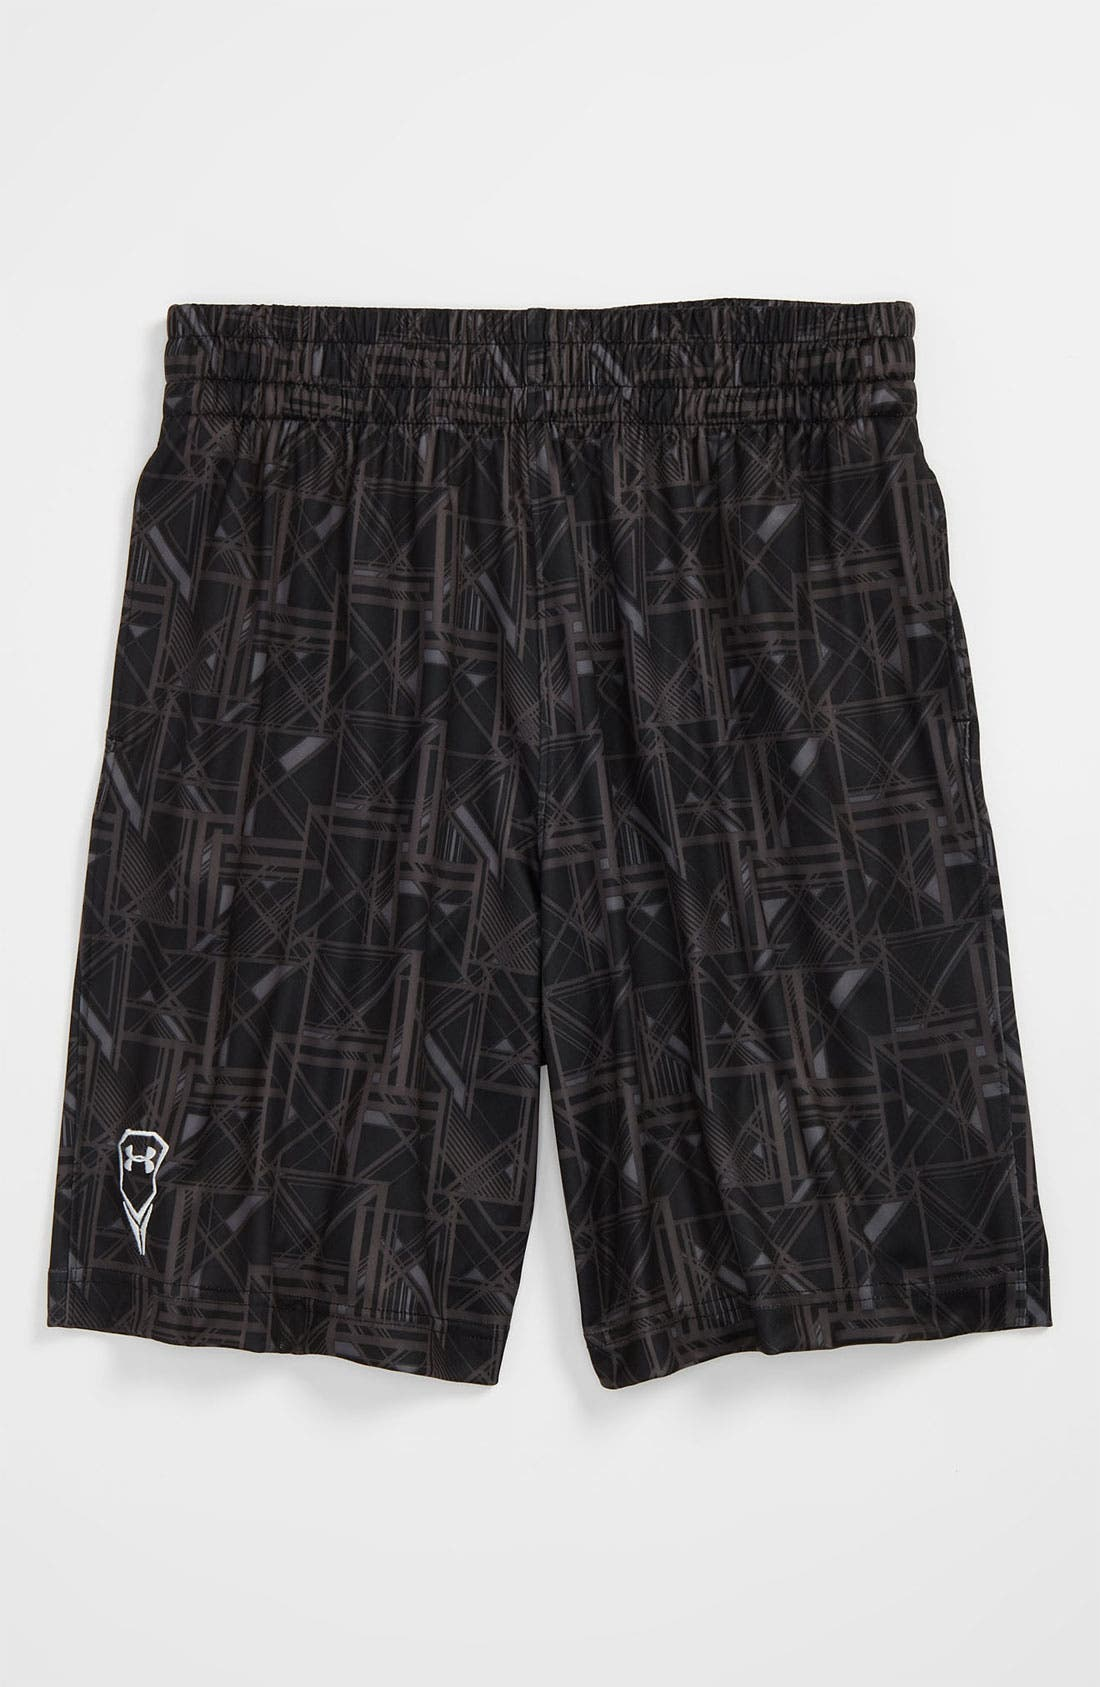 Alternate Image 1 Selected - Under Armour 'Howie Dewdat' Shorts (Big Boys)